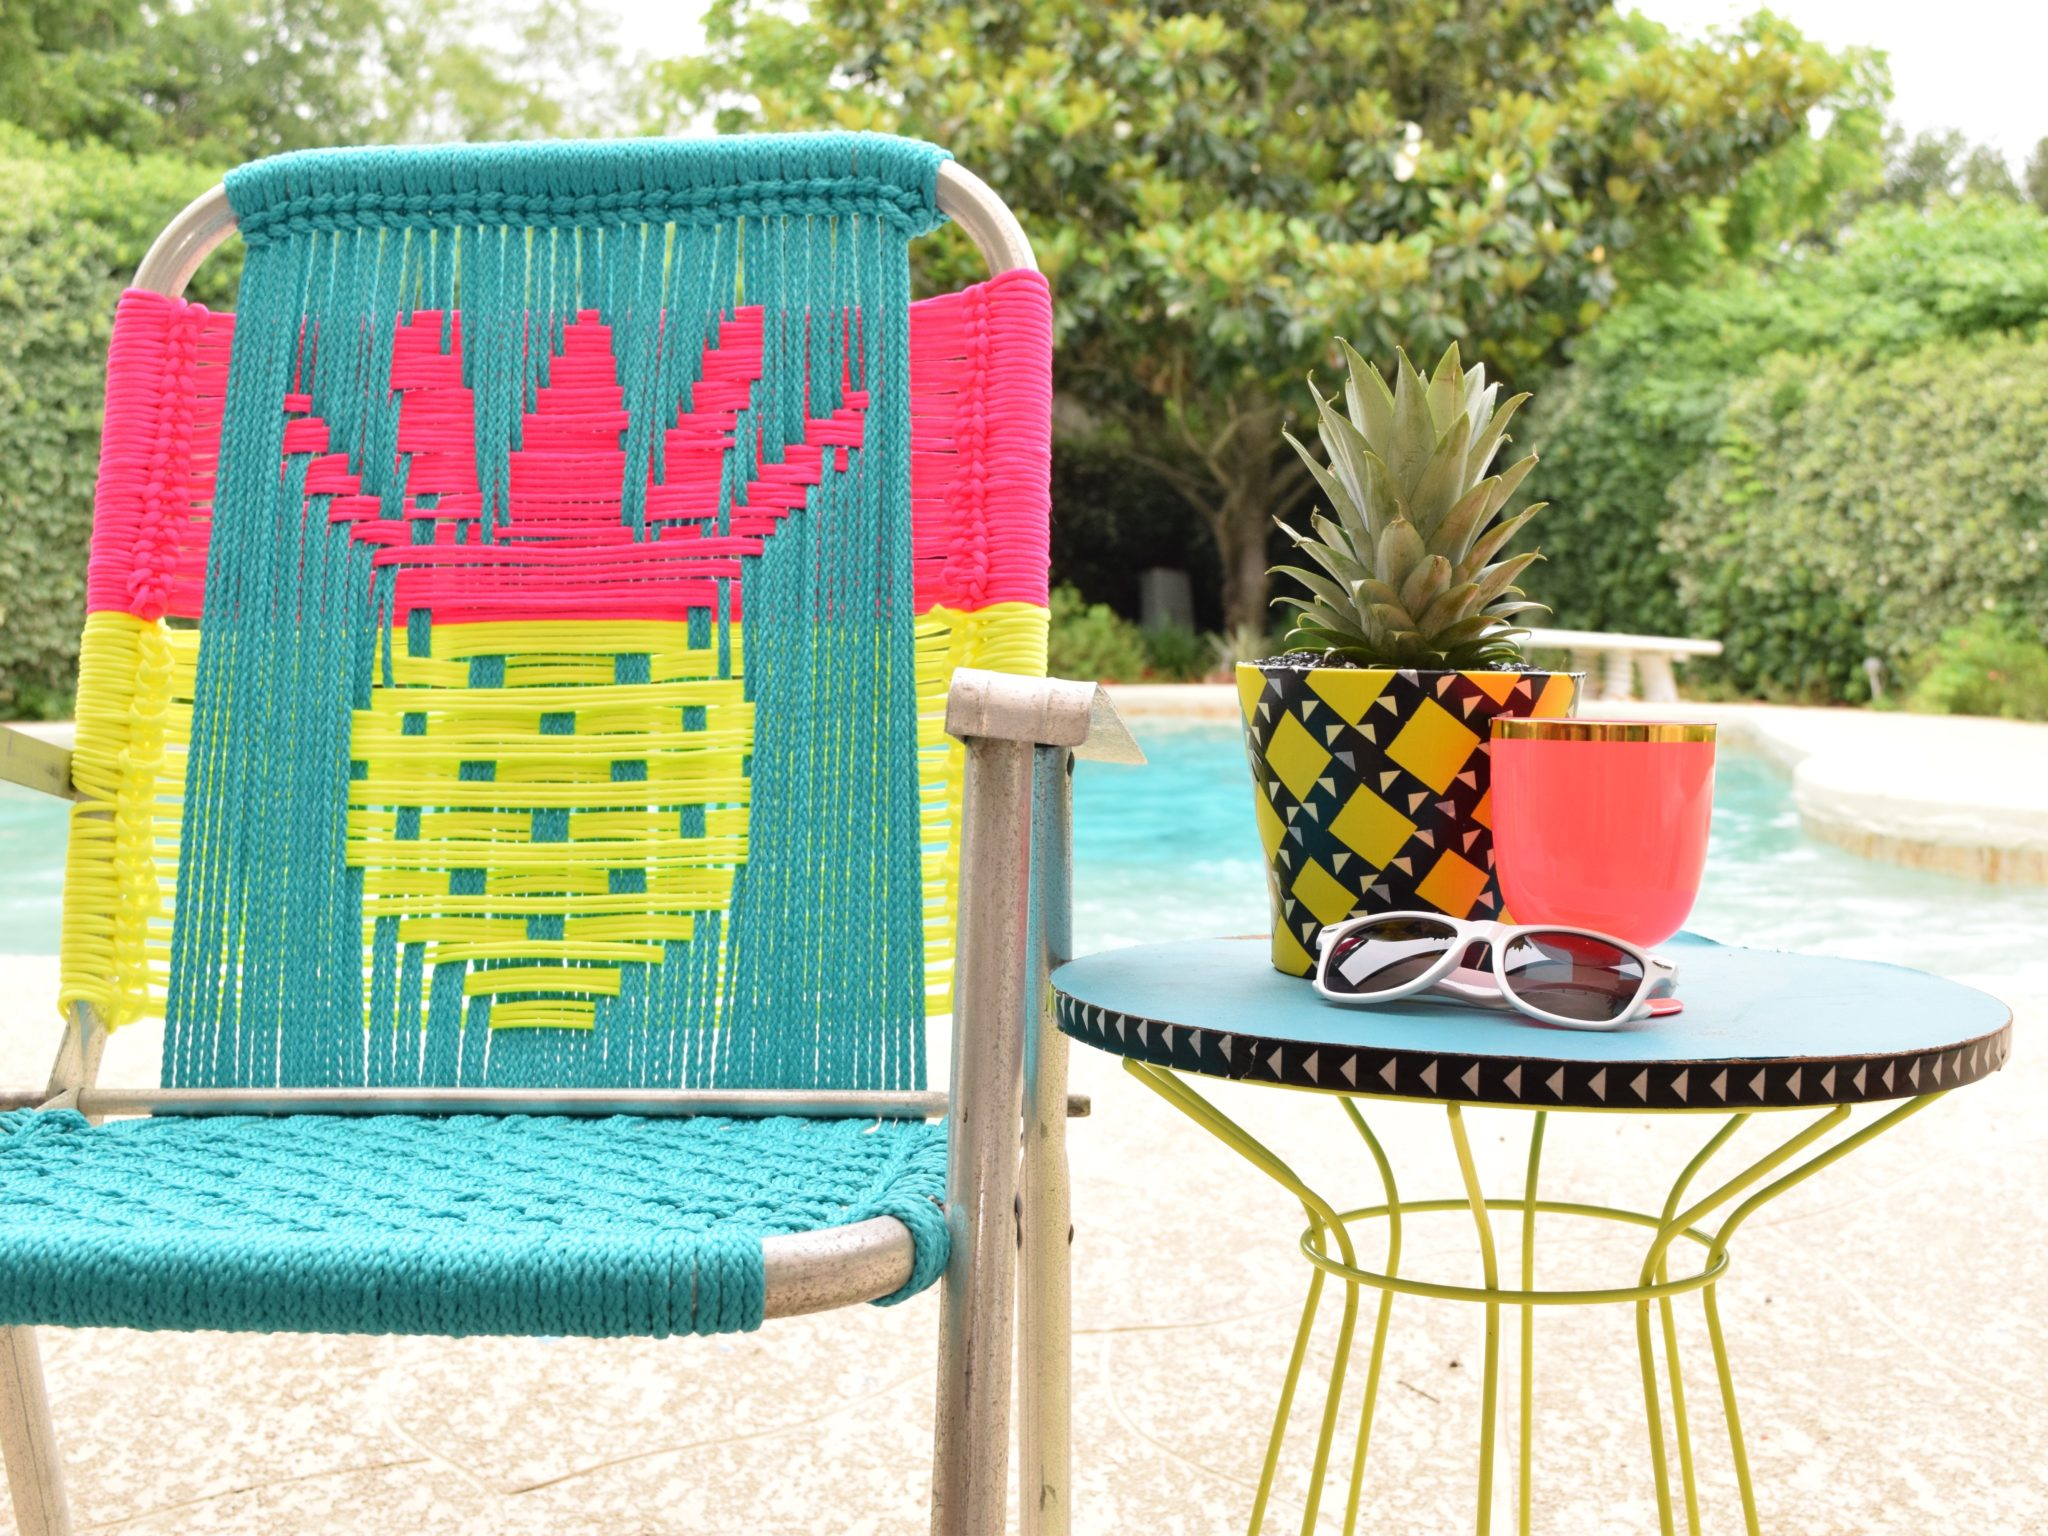 How to macrame a pineapple lawn chair.